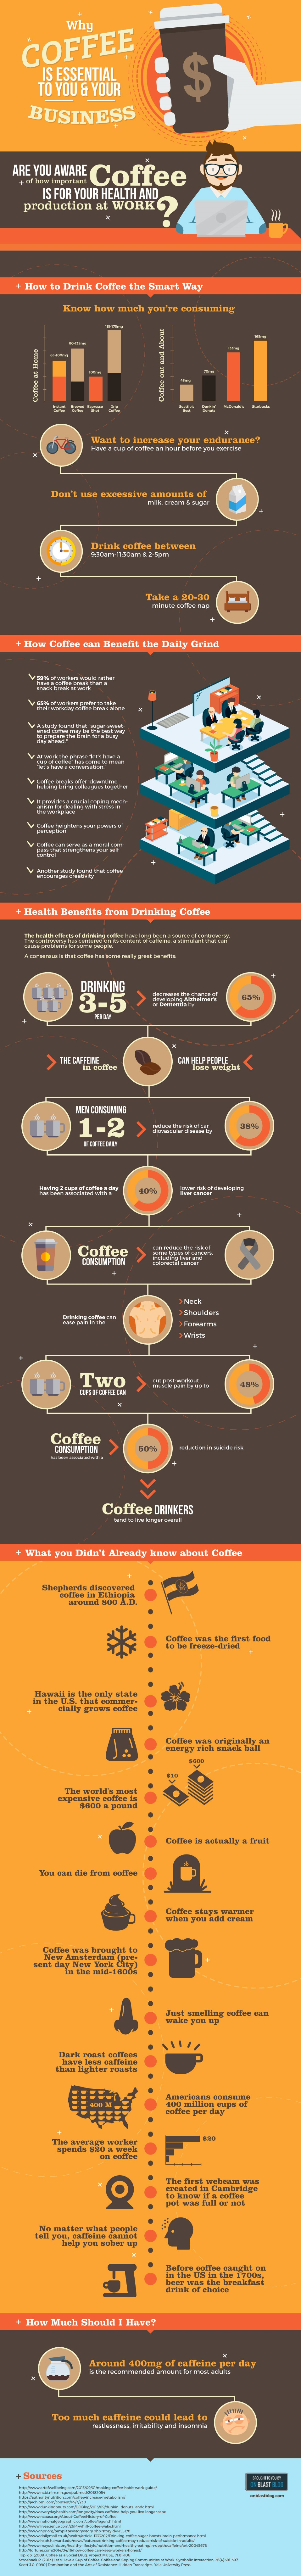 Coffee: The Greatest Brewed Drink Ever Made (Infographic)